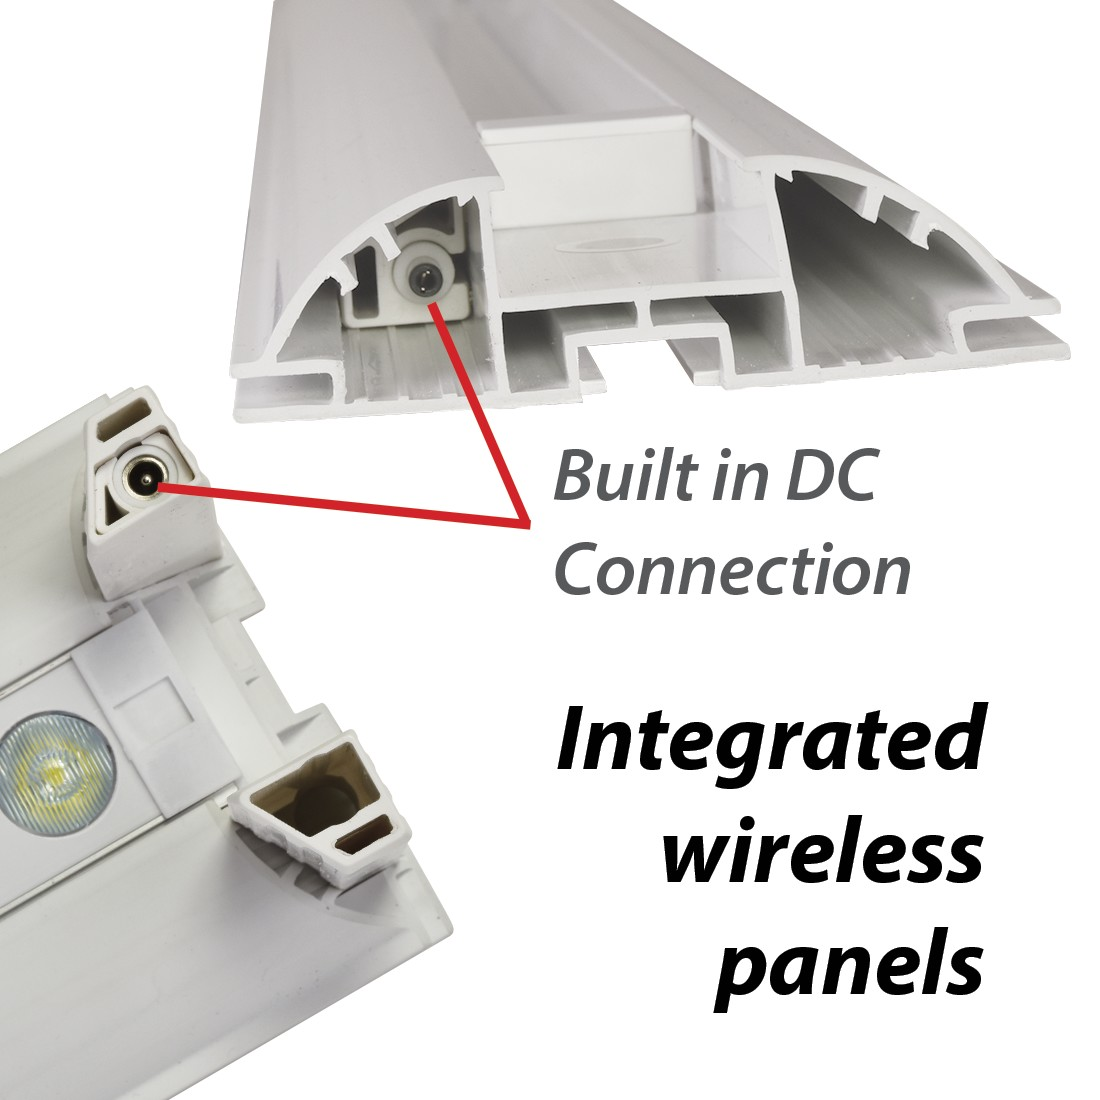 Integrated Wireless Panels